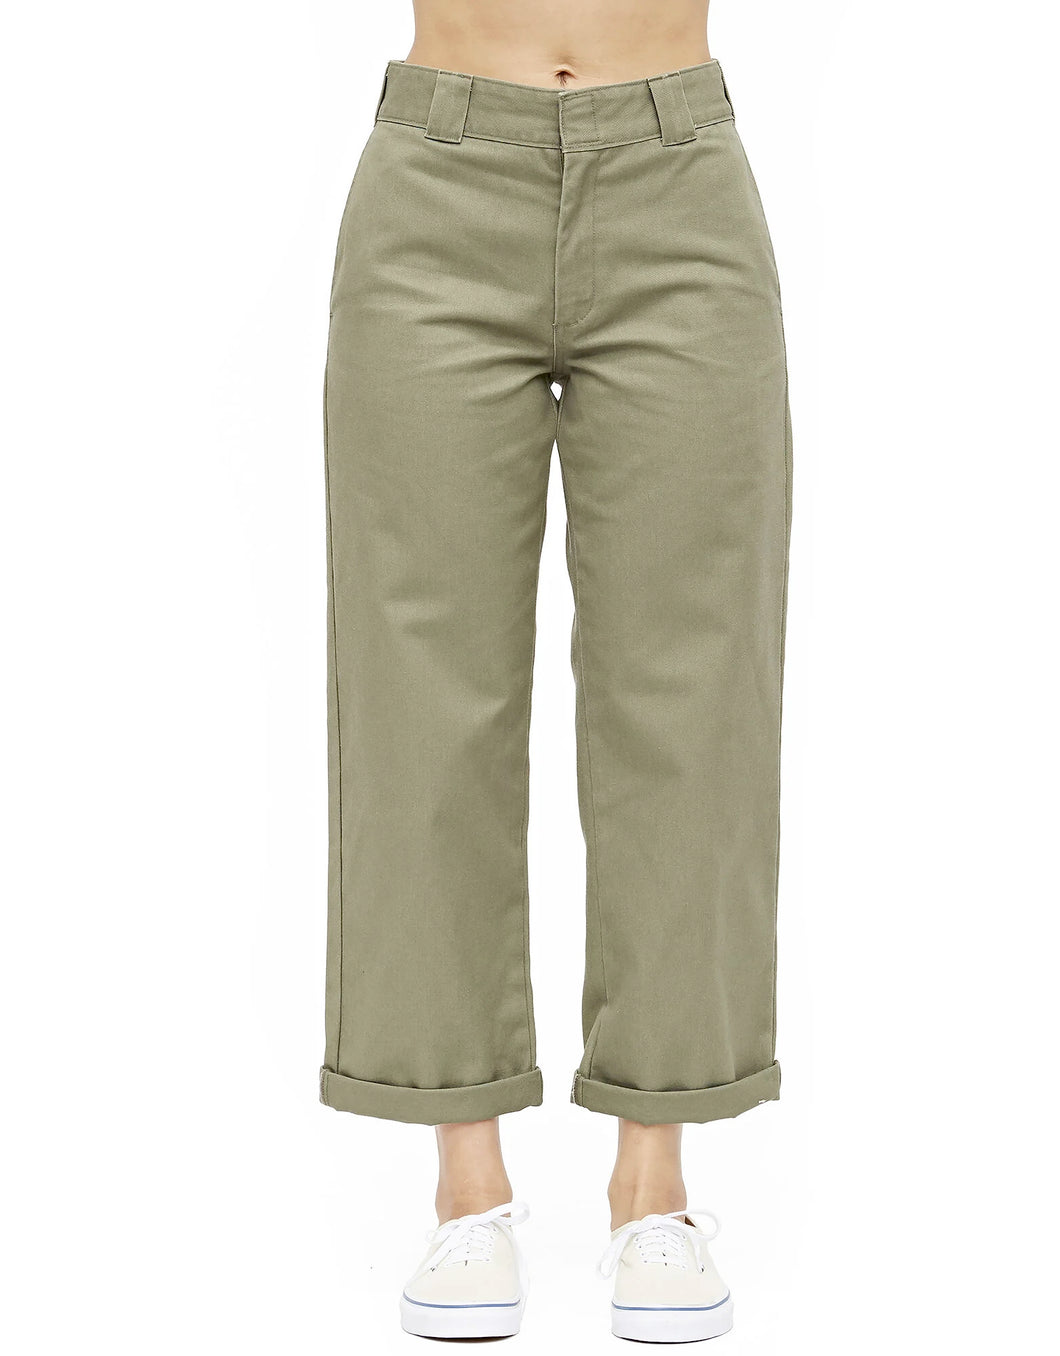 DICKIES HIGH RISE CROPPED WORK PANTS OLIVE